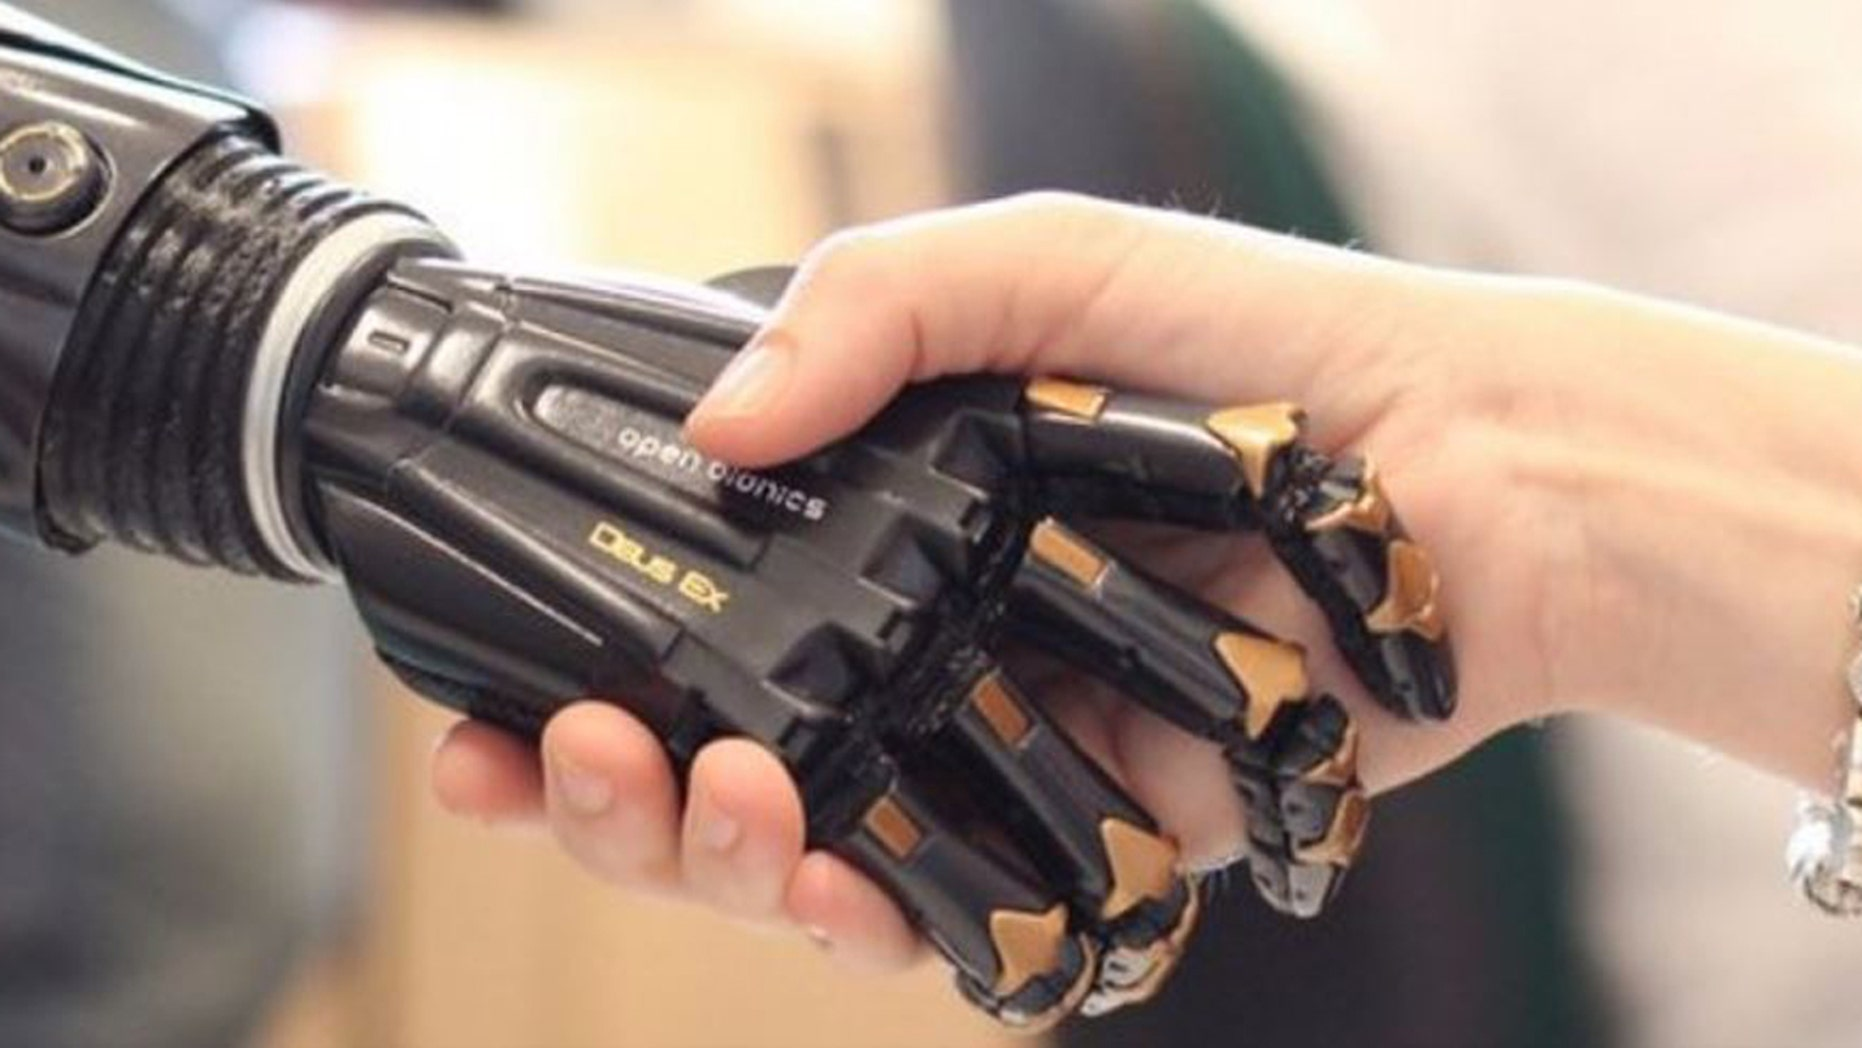 Open Bionics is based in the United Kingdom and produces 3D-printed prosthetics like the one above.